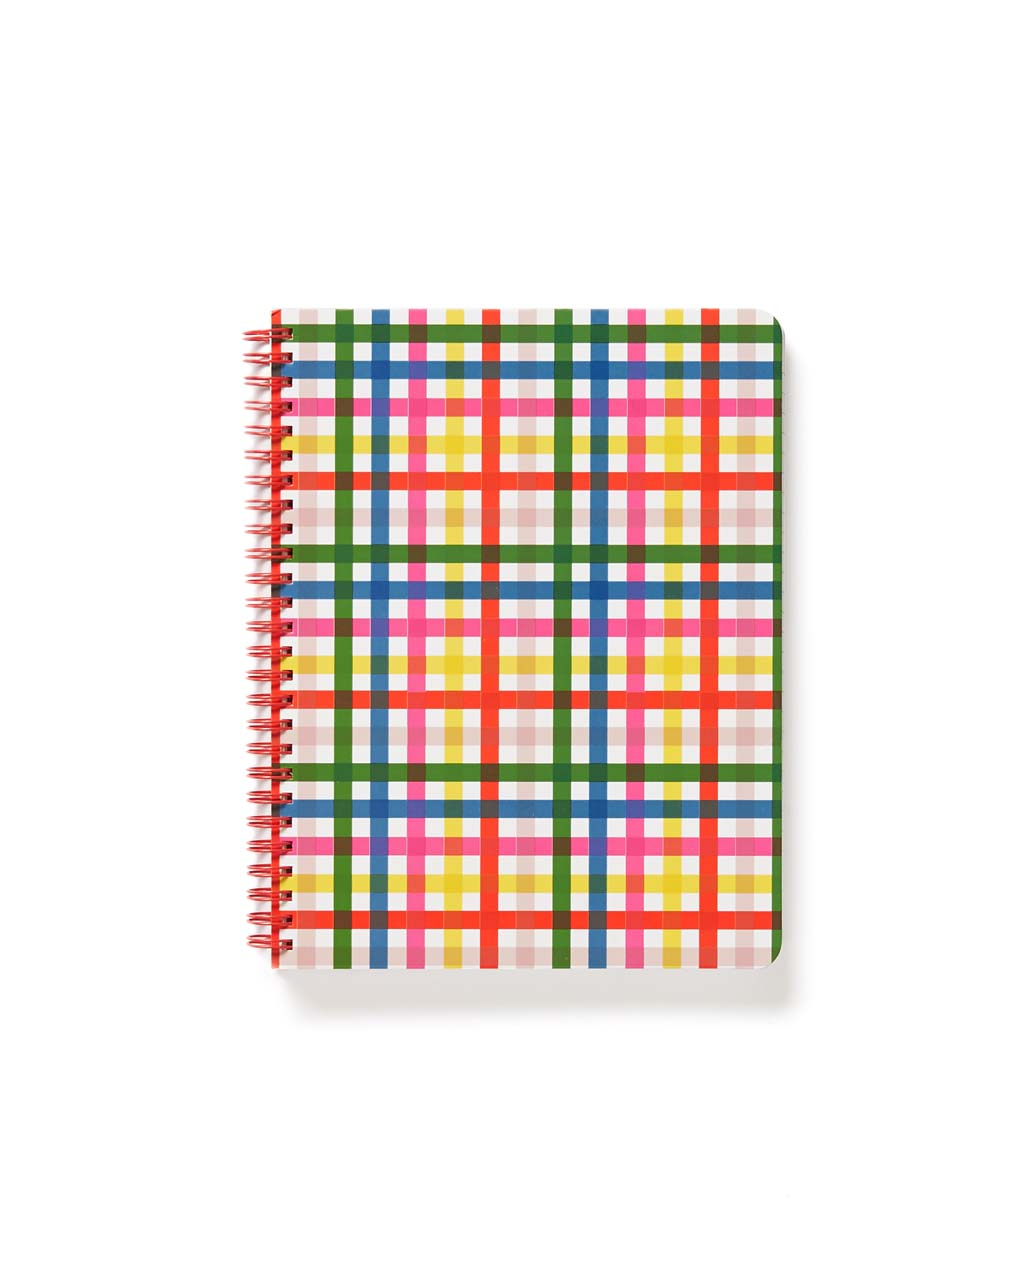 Red, green, blue, yellow and pink plaid spiral notebook with red spiral